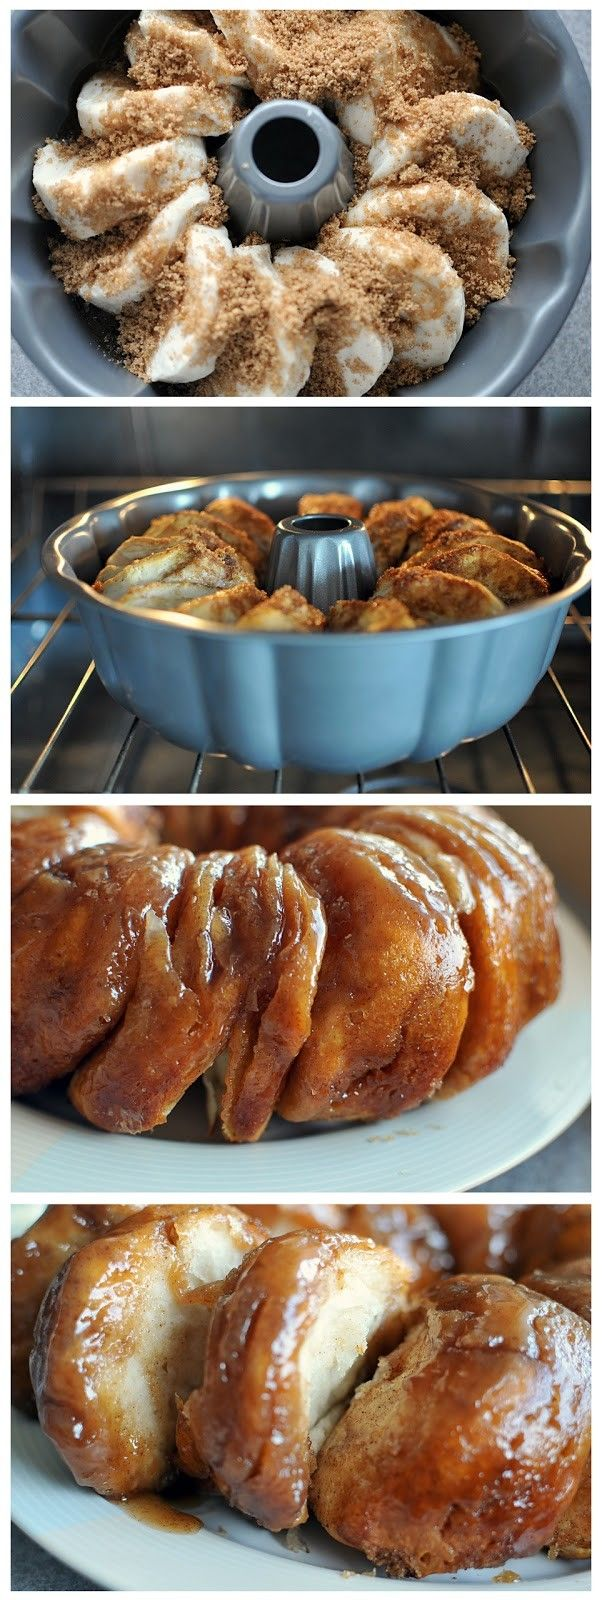 10 Things to Make with Canned Biscuits There's so much you can do with refrigerated biscuit dough! From easy homemade apple Danish to cheesy ham pockets, get .